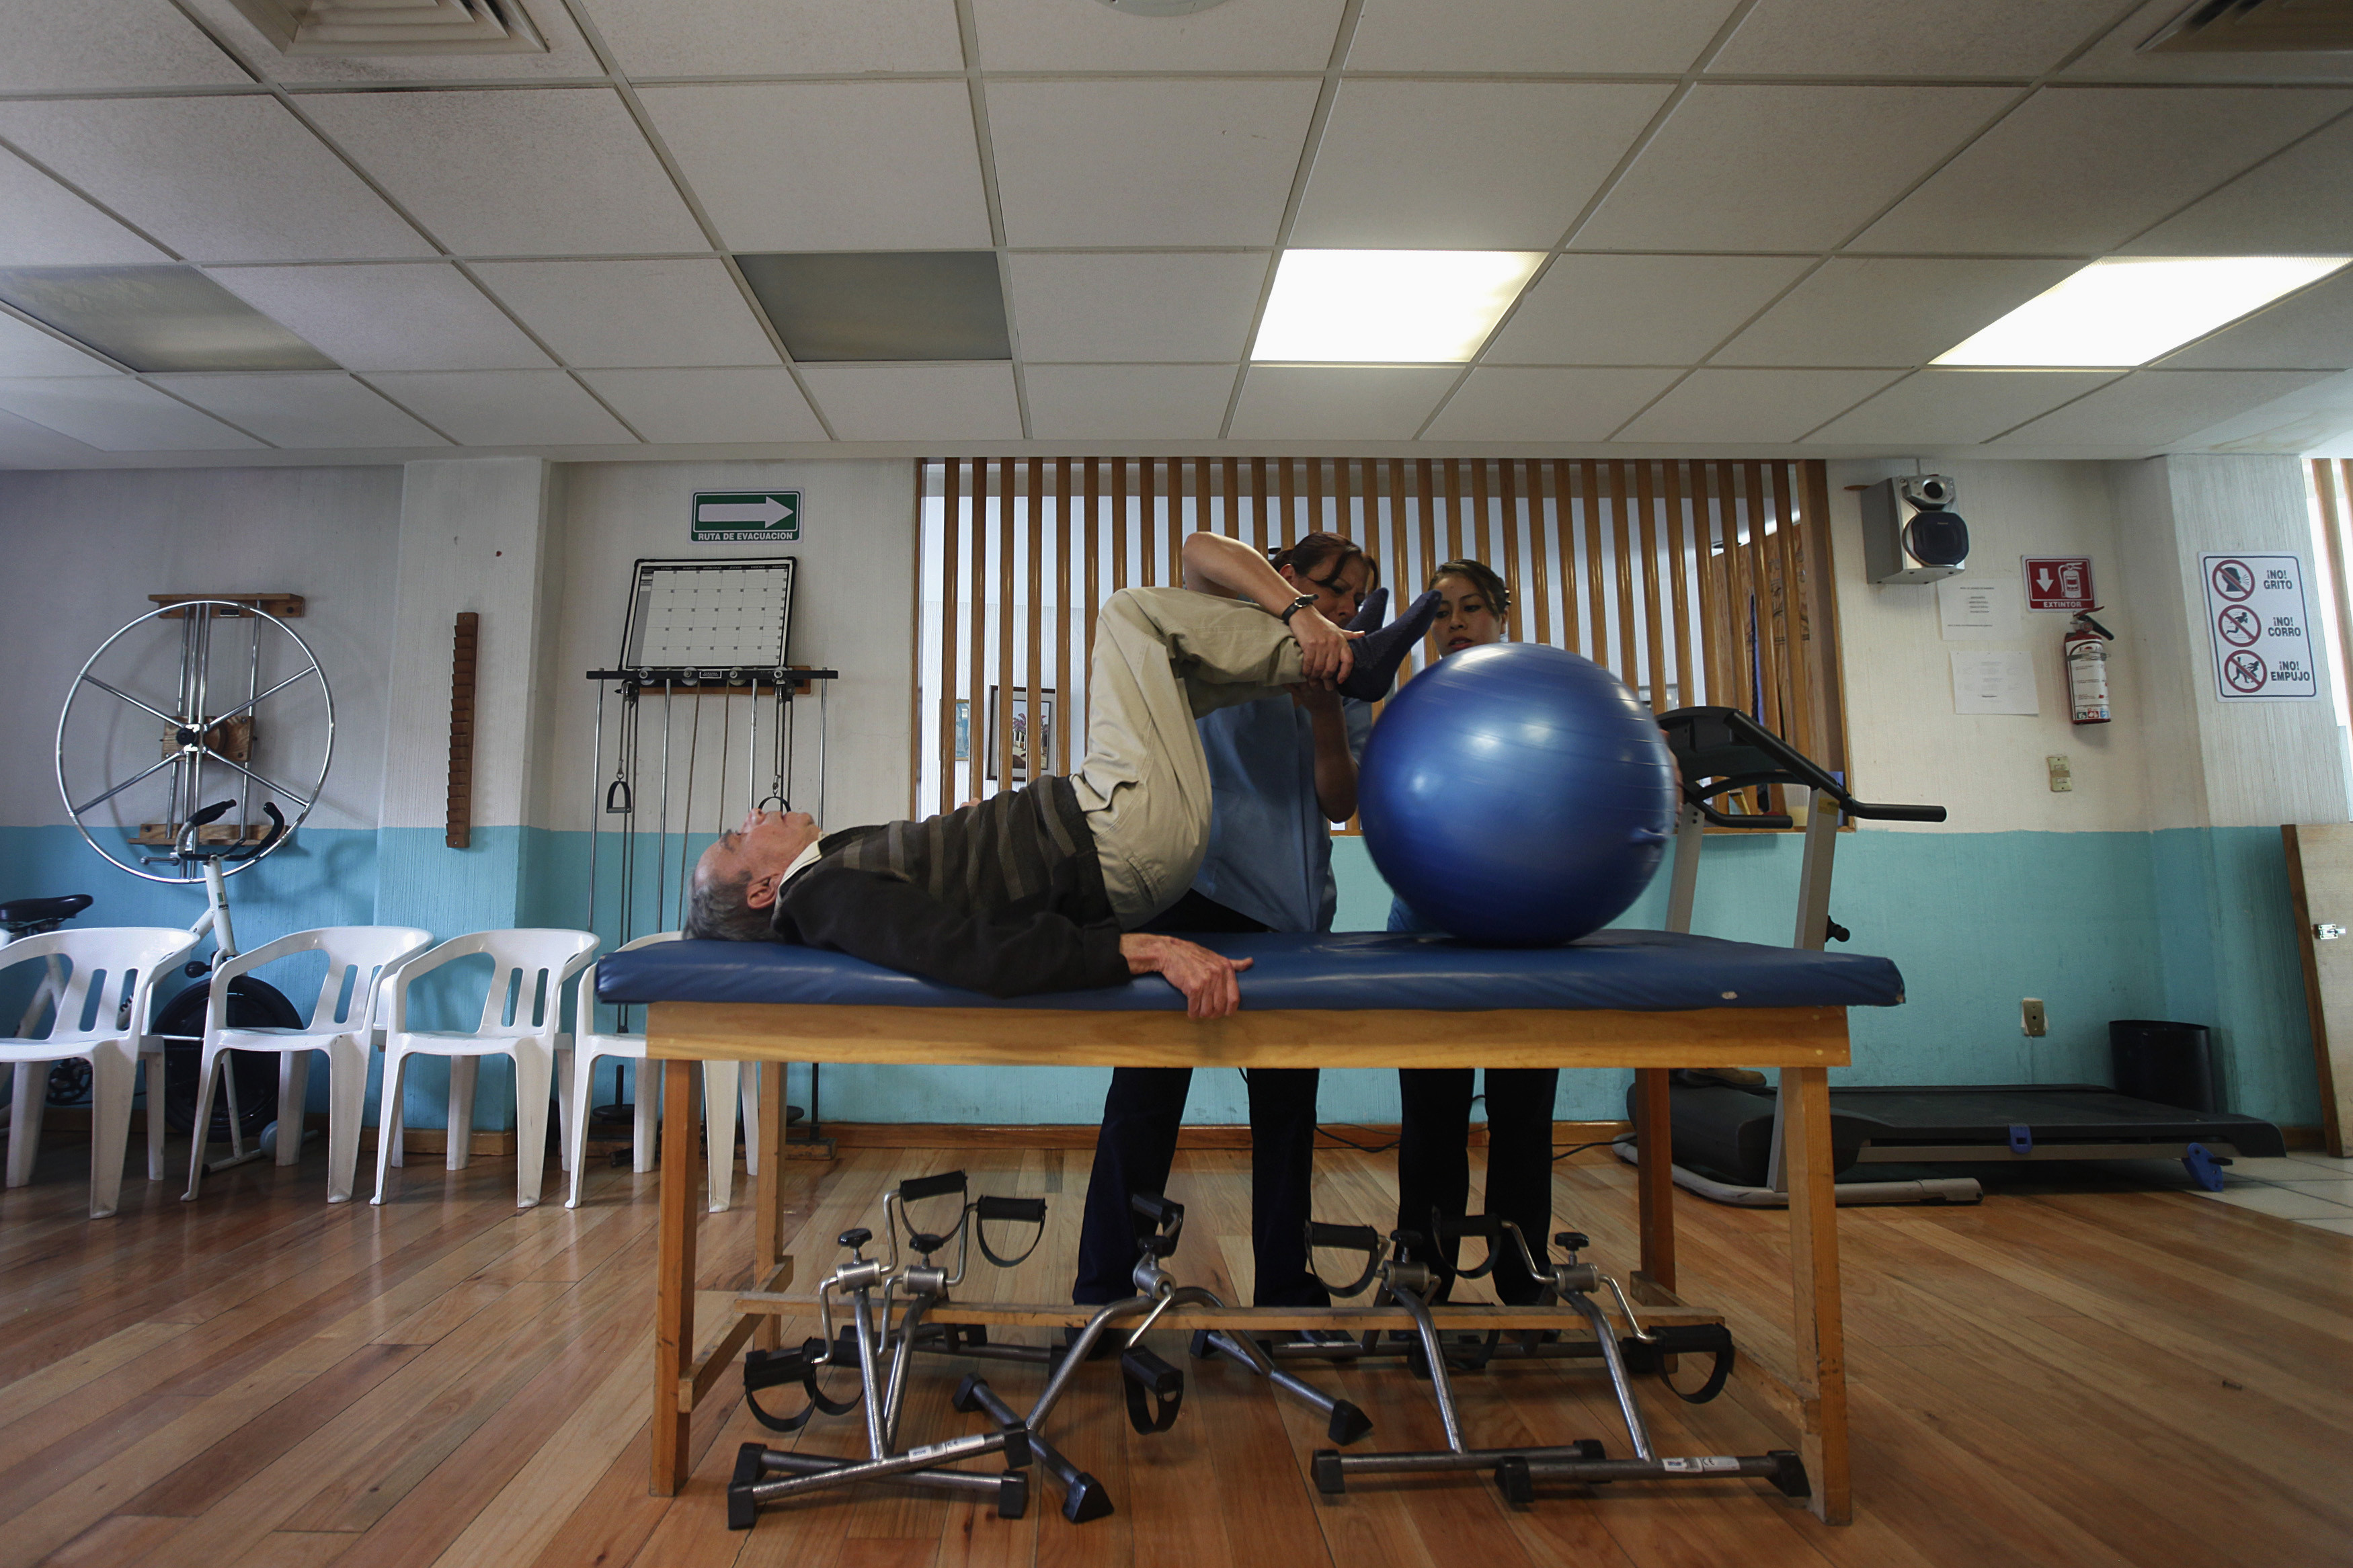 An Alzheimer's patient exercises during a therapy session. Exercising regularly is a lifestyle factor that can influence your risk of dementia.